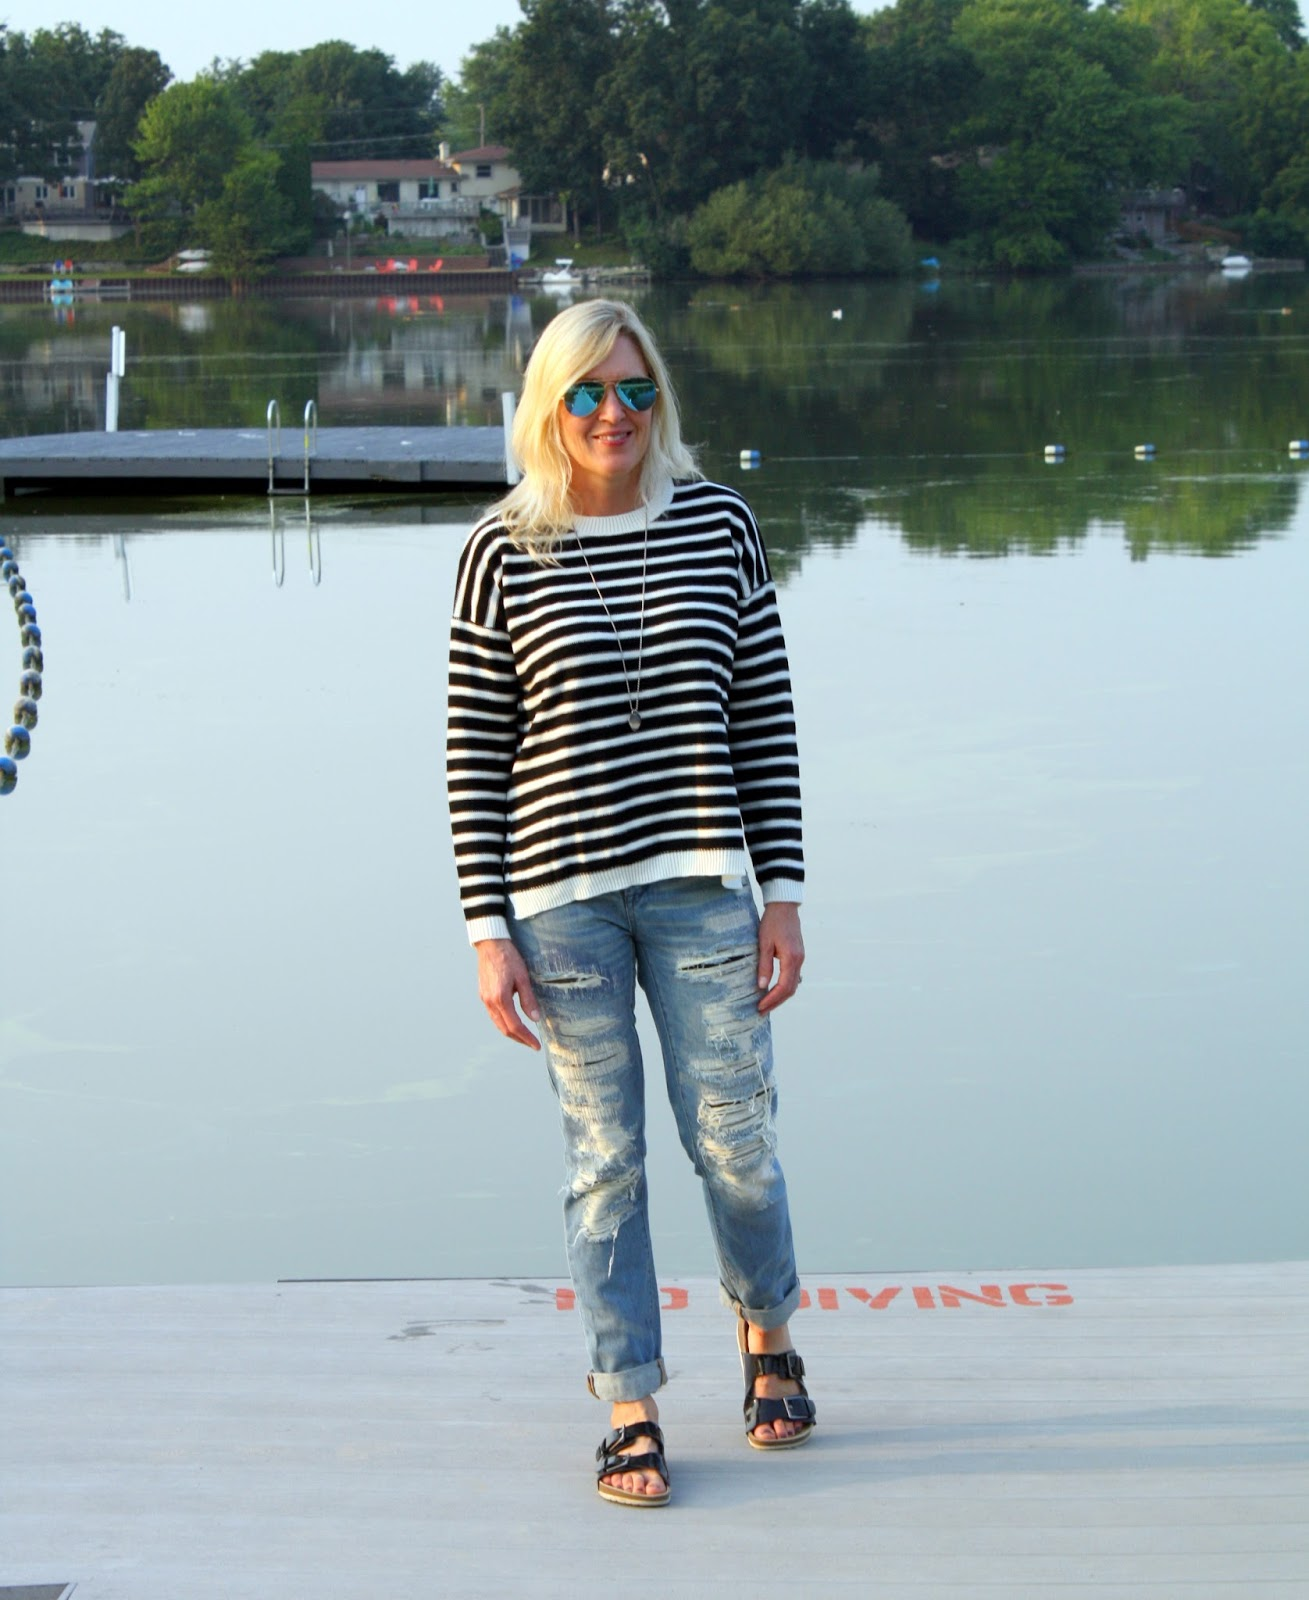 SheIn striped sweater and destroyed jeans to transition to fall